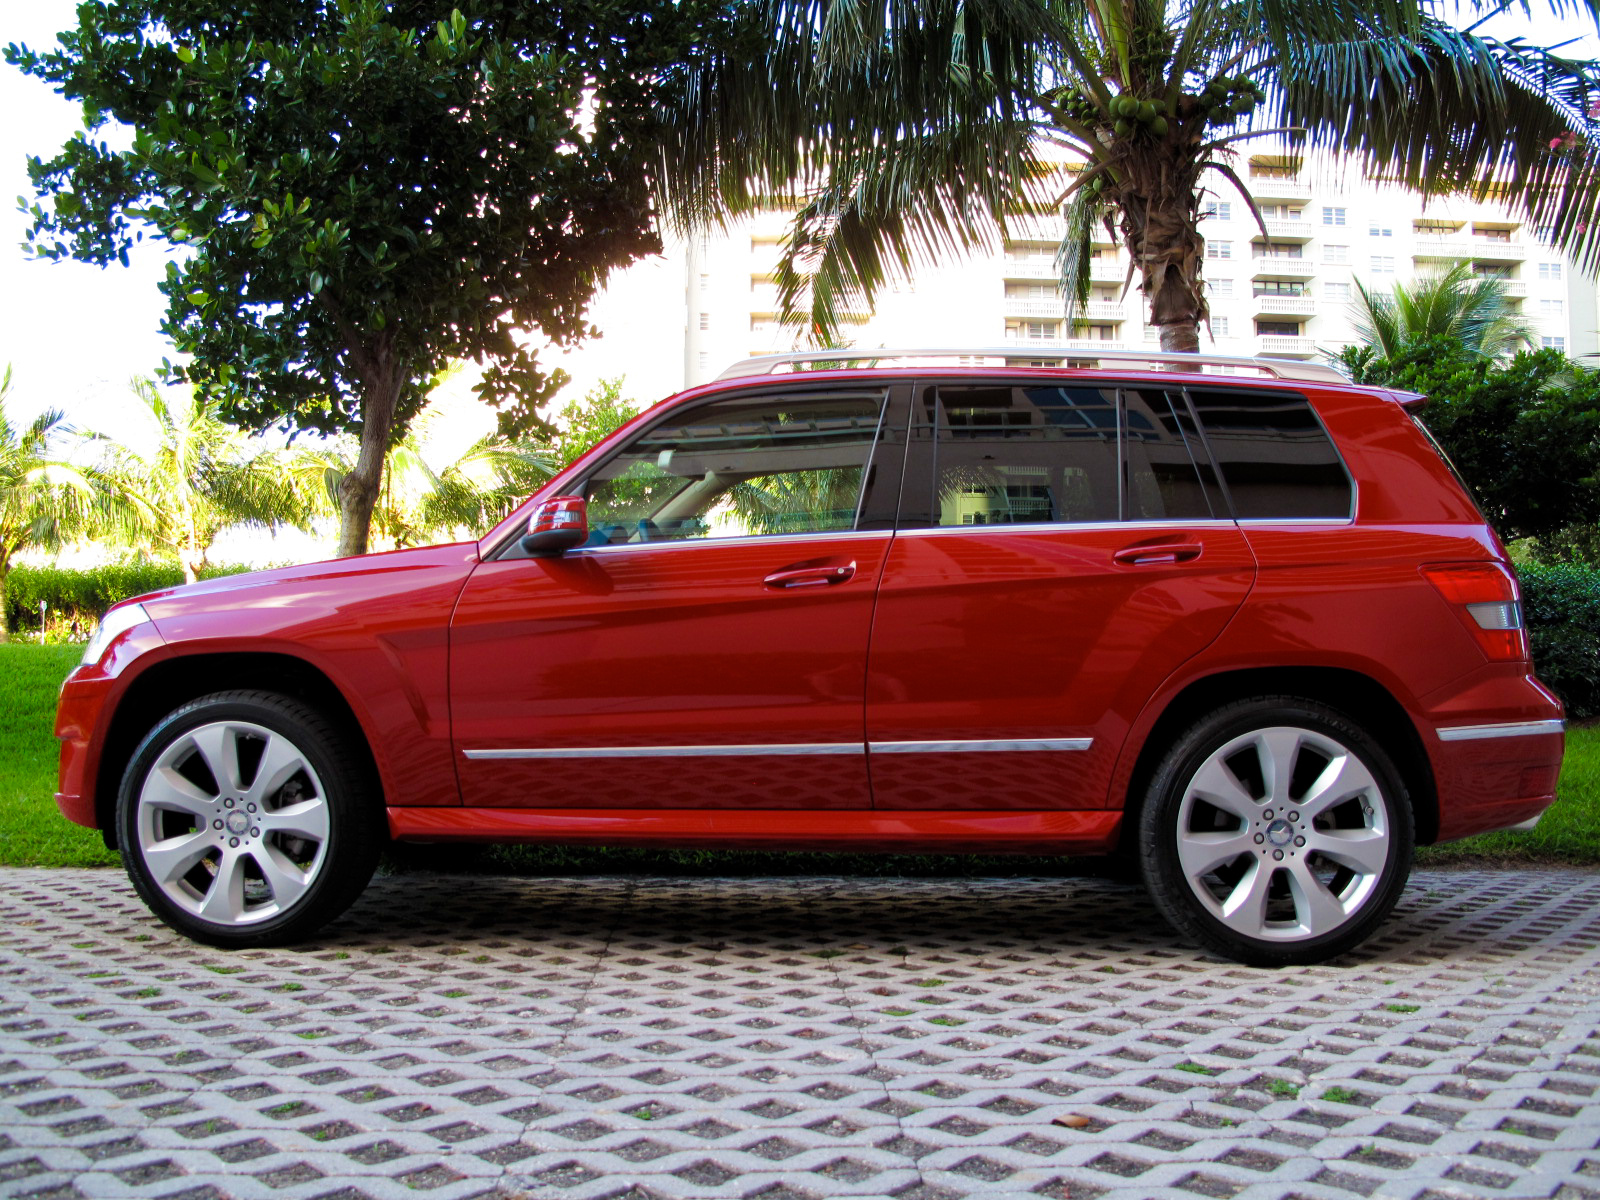 2010 mercedes benz glk 350 gallery 344504 top speed. Black Bedroom Furniture Sets. Home Design Ideas